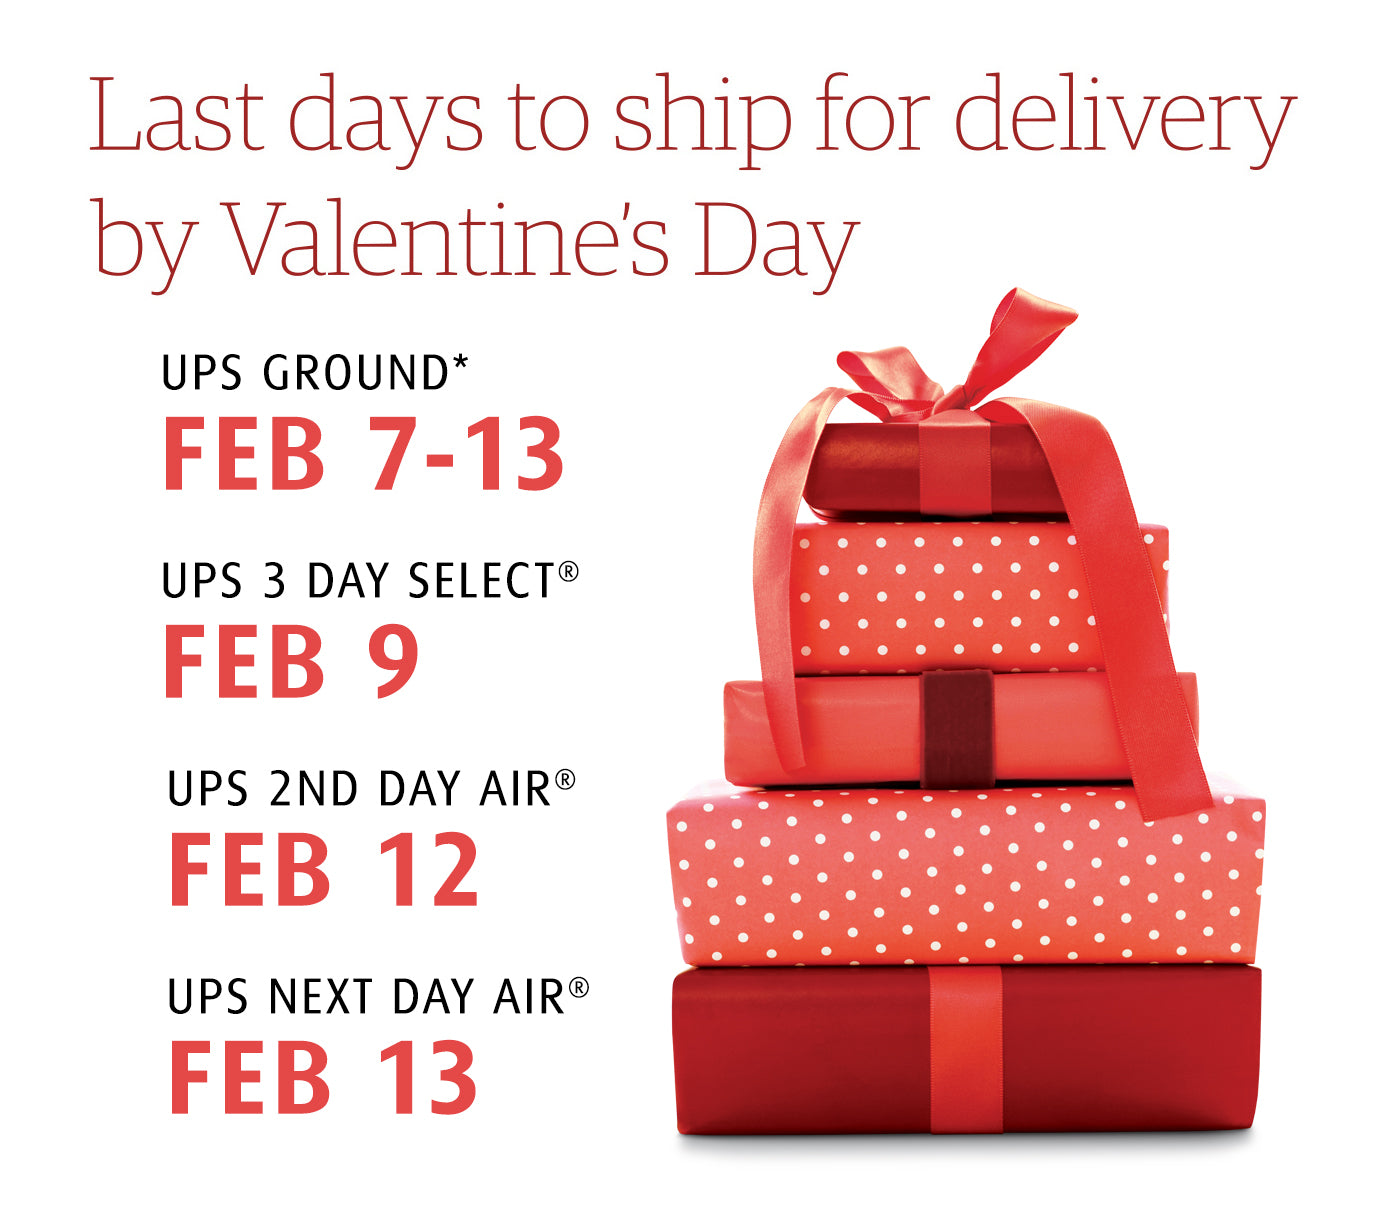 Last days to ship for delivery by Valentine's Day